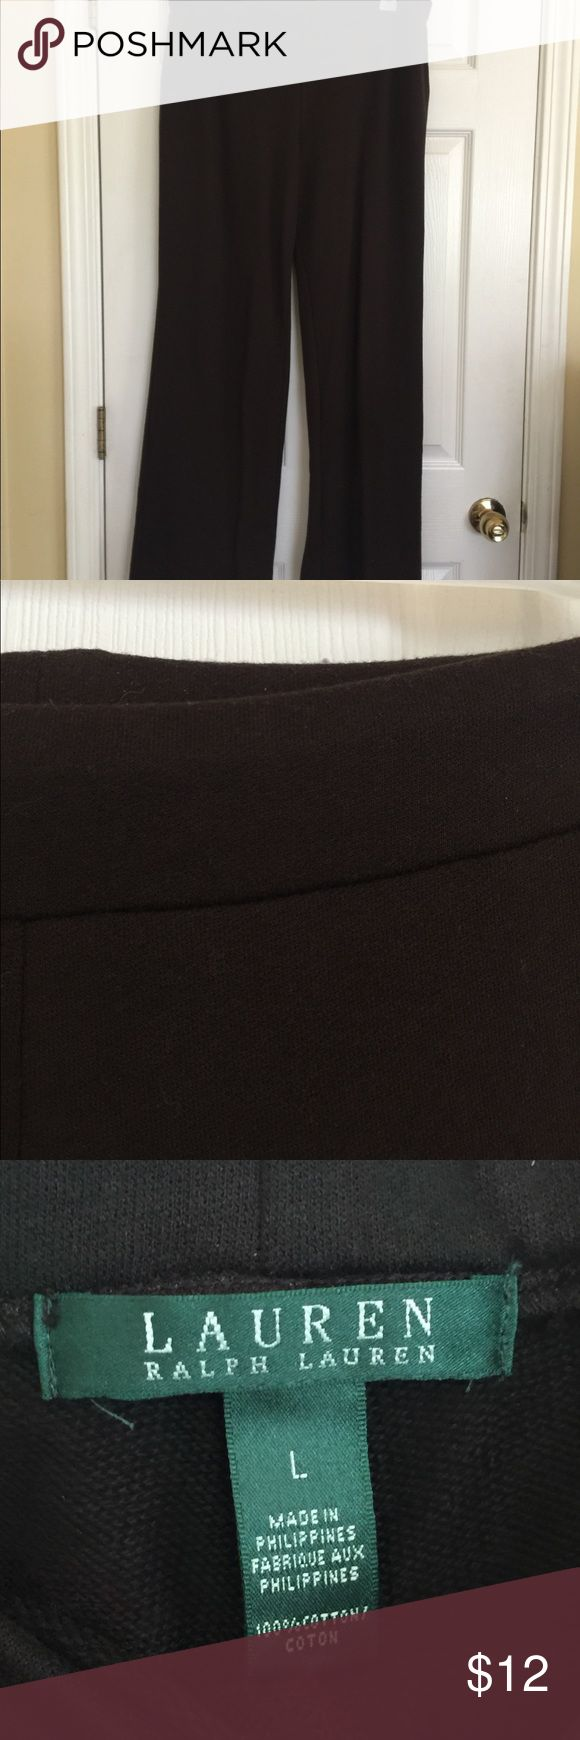 """Ralph Lauren Soft brown pants Very soft and stretchy all over. Wide waist band for mobility comfort and smoothness under tops.  Inseam 31"""" Lauren Ralph Lauren Pants Trousers"""